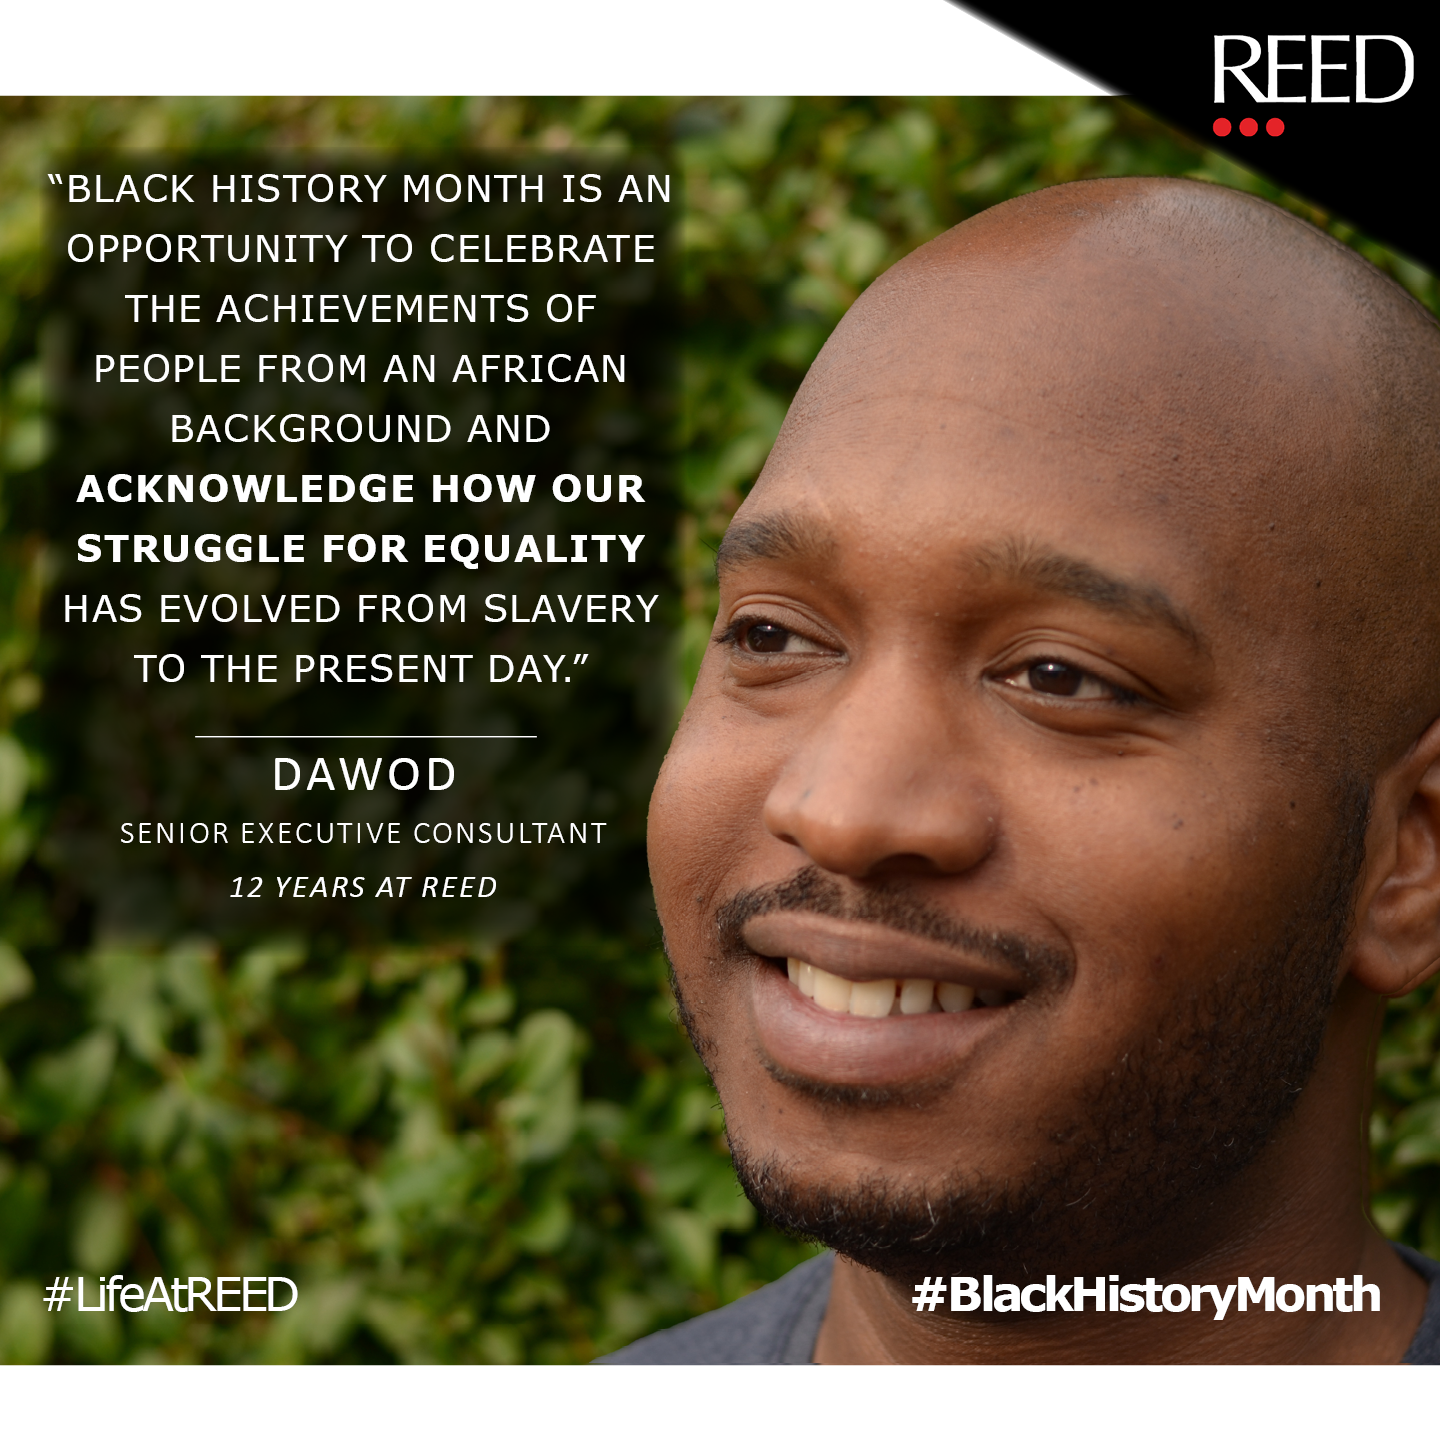 Dawod - Black History Month 2020 quote